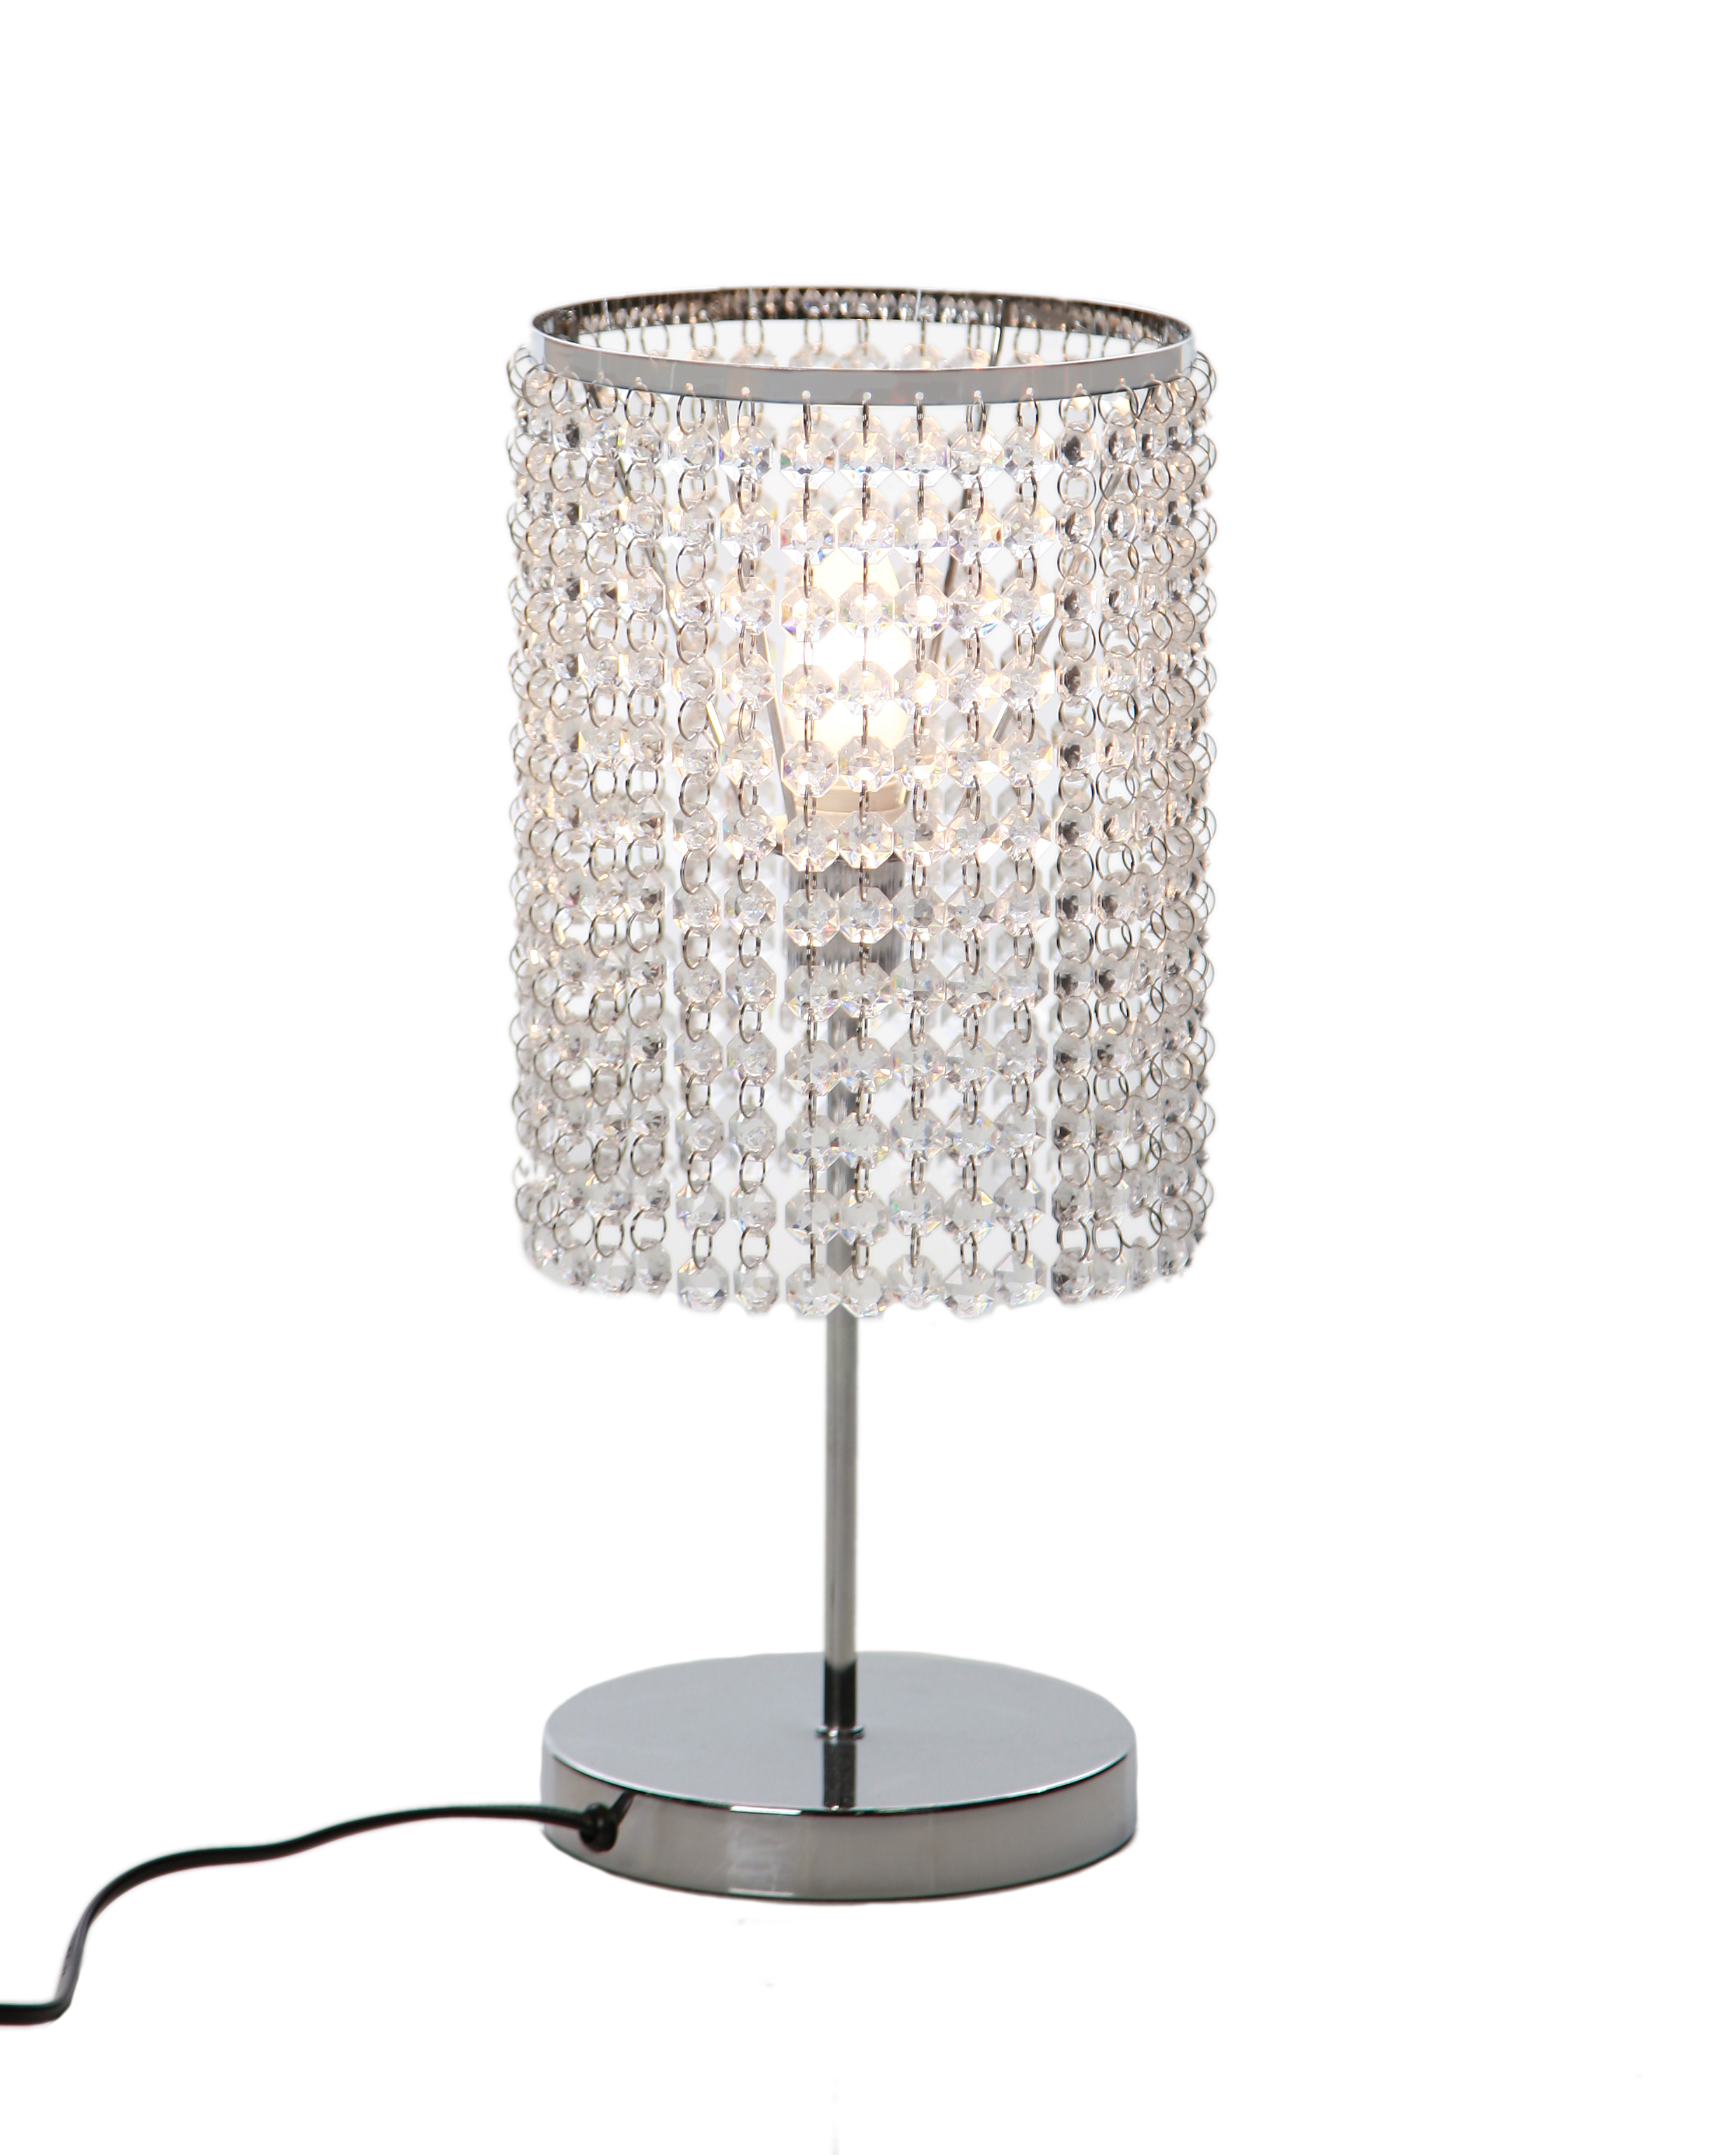 Tree Effect Floor Lamps : Table lamp floor light or ceiling shade chrome crystal